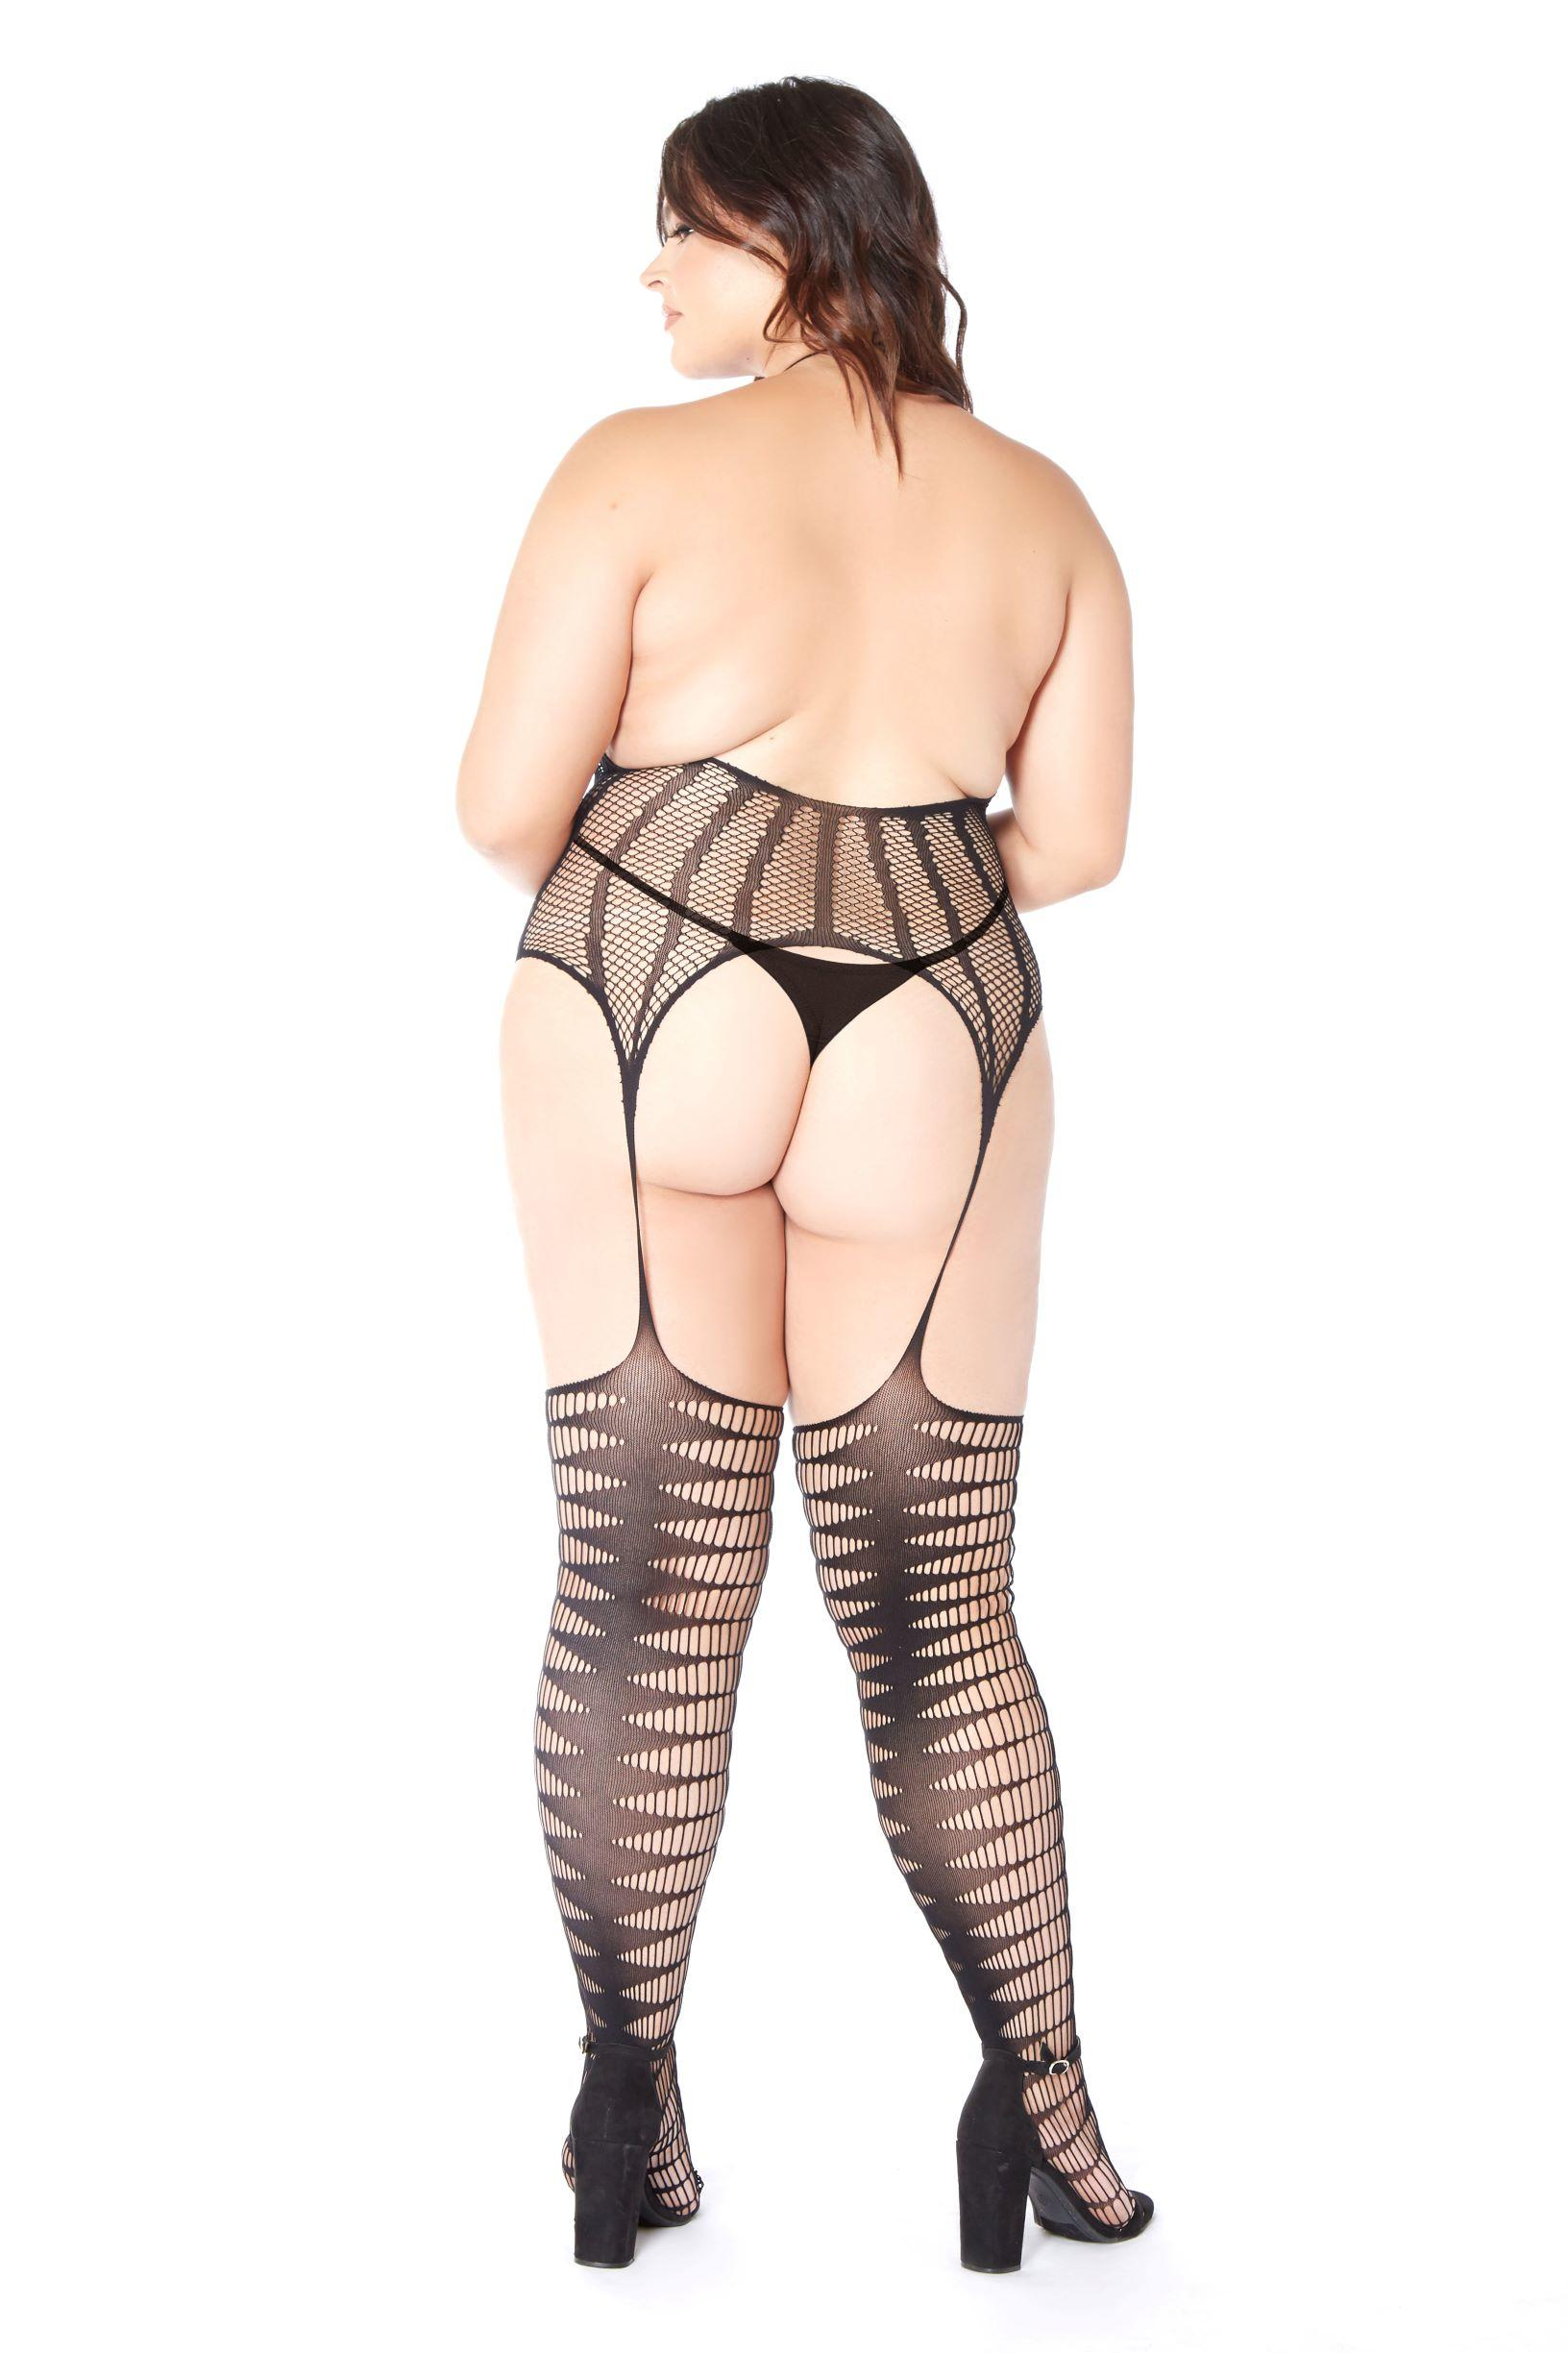 Crotchless Fishnet Bodystocking rear view